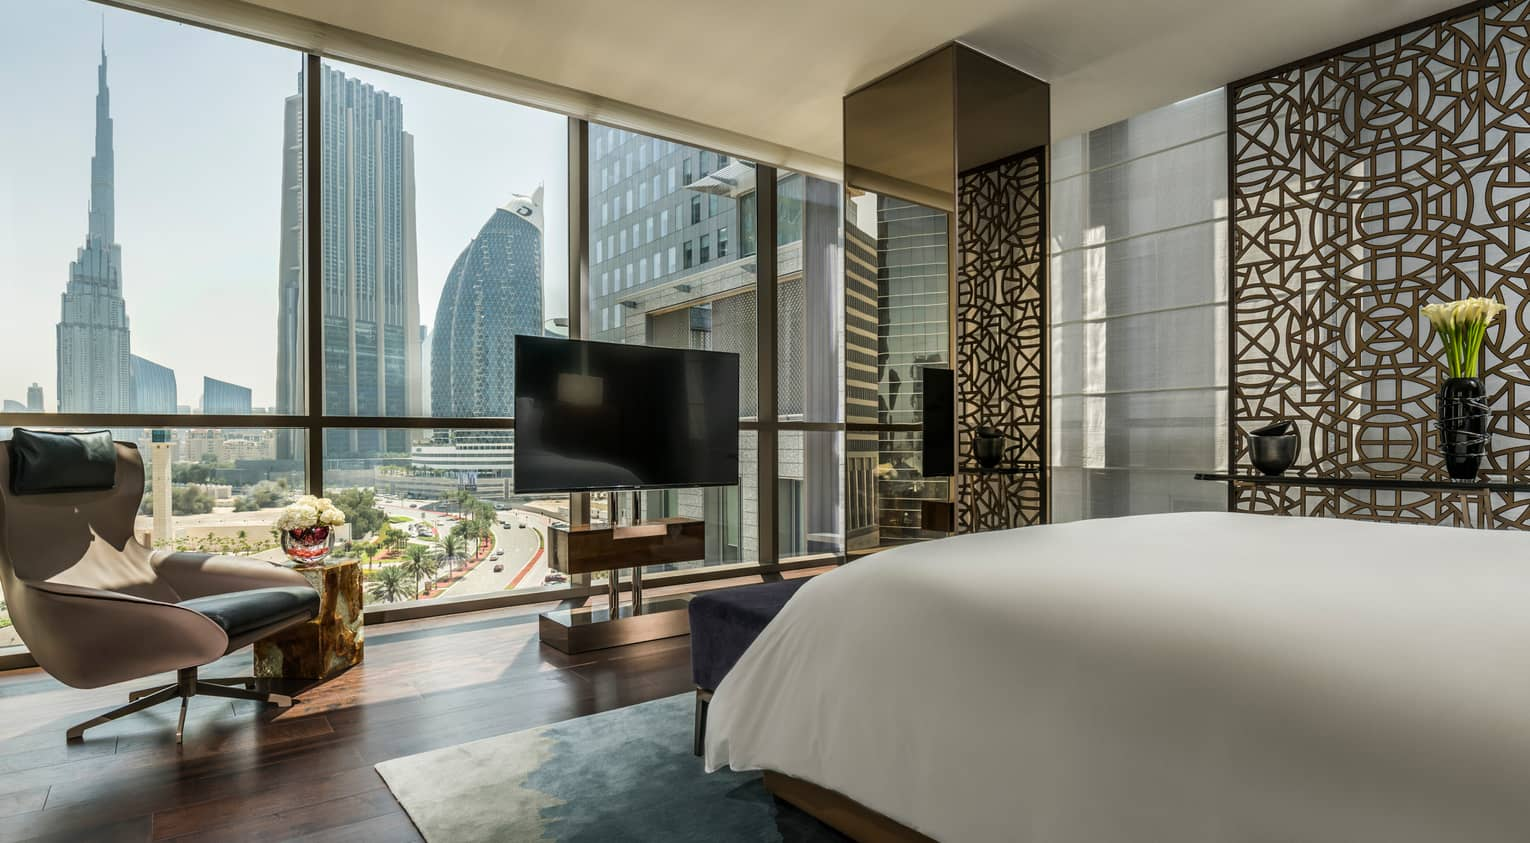 Four Seasons Deluxe Executive Suite room with bed, floor-to-ceiling window with Burj Khalifa view